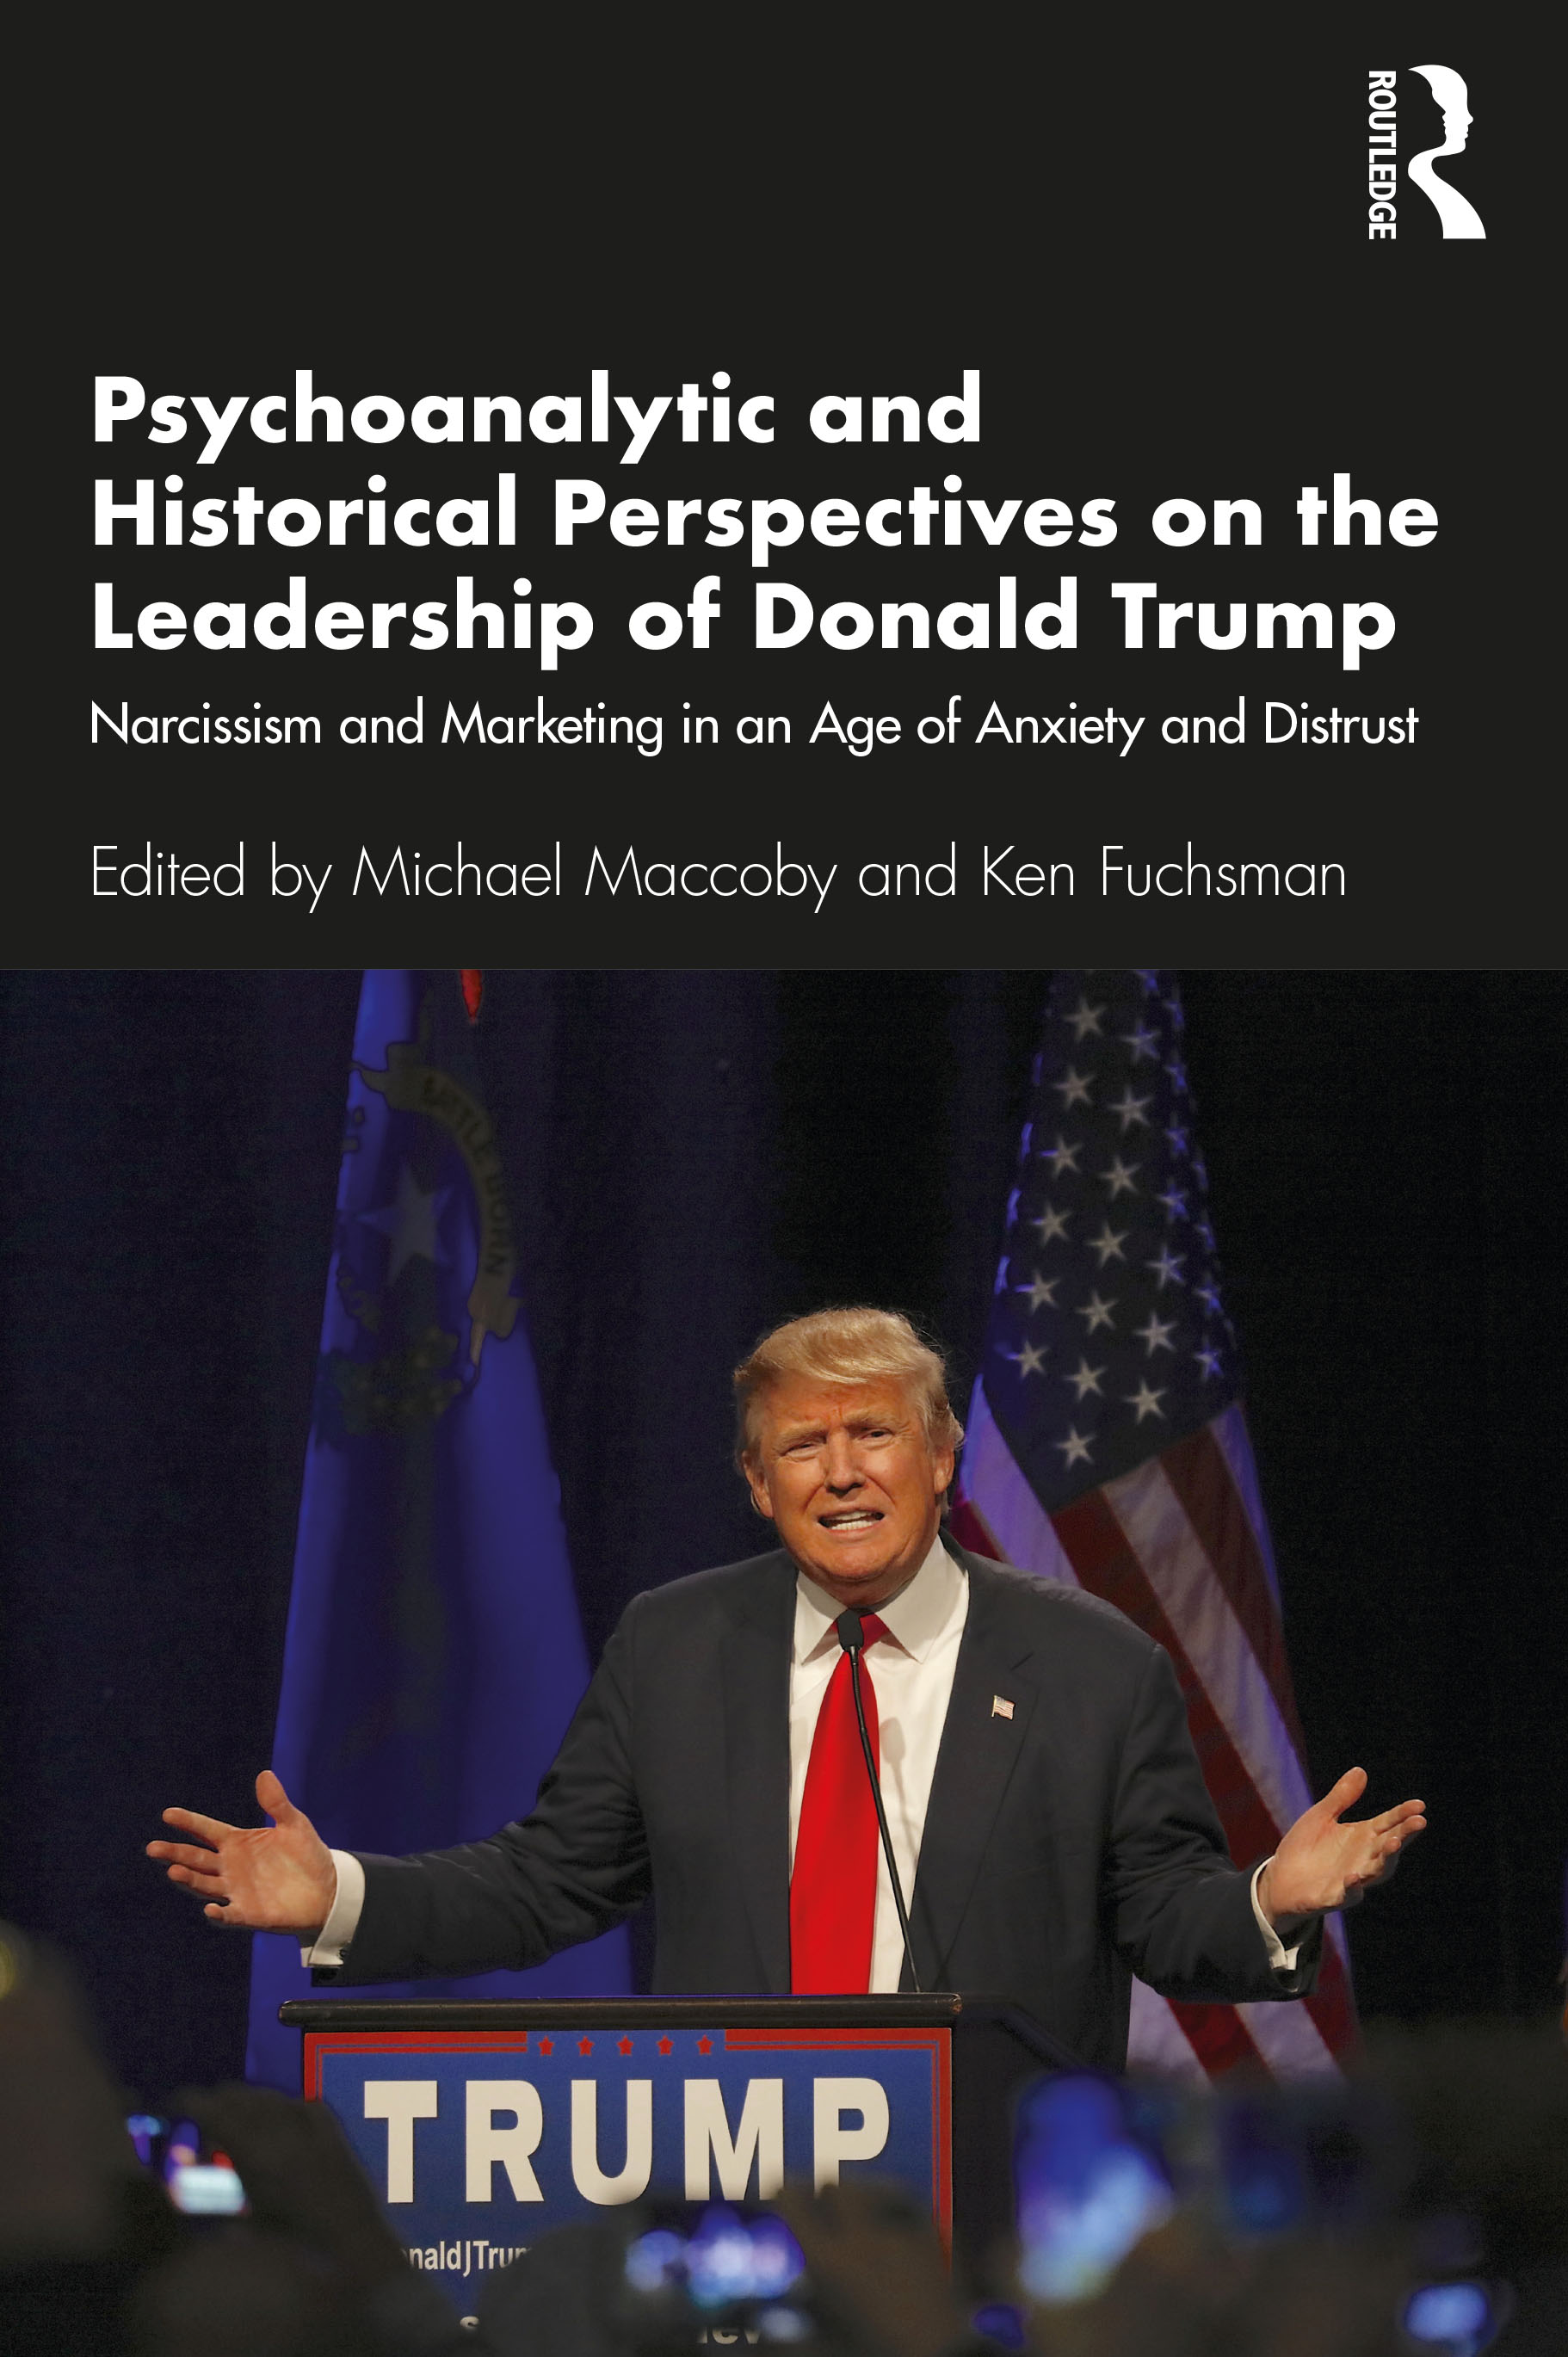 Psychoanalytic and Historical Perspectives on the Leadership of Donald Trump: Narcissism and Marketing in an Age of Anxiety and Distrust book cover